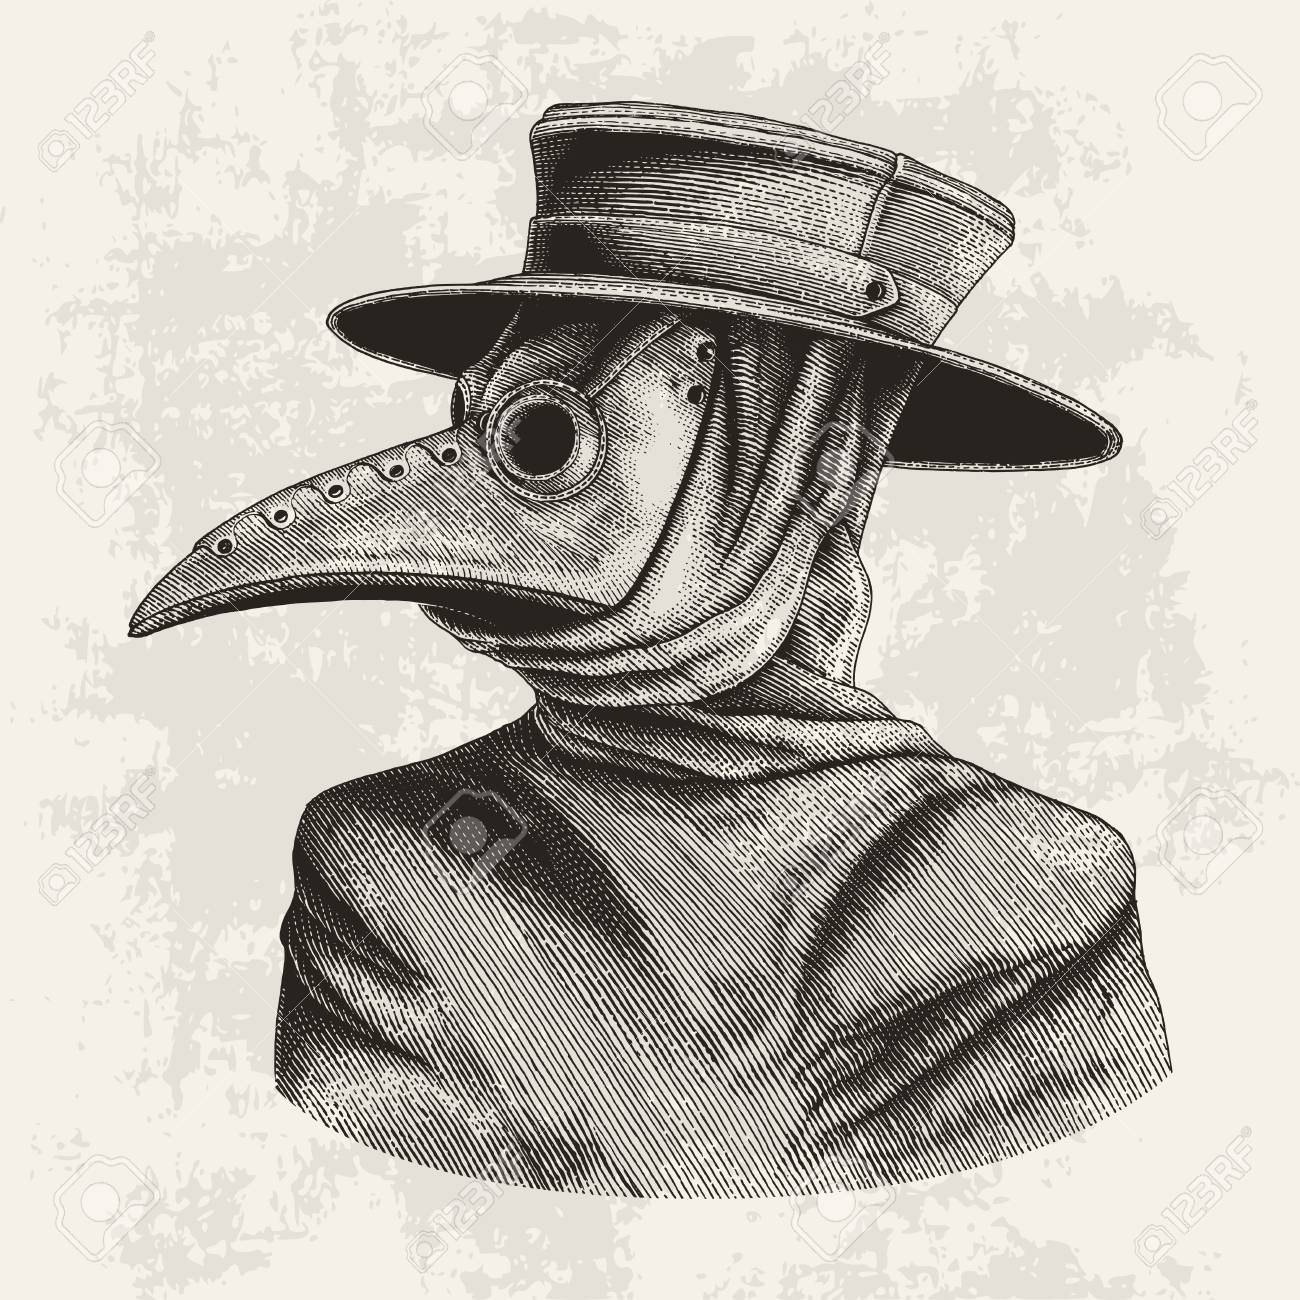 Plague doctor hand drawing vintage engraving isolate on grunge background - 102872614